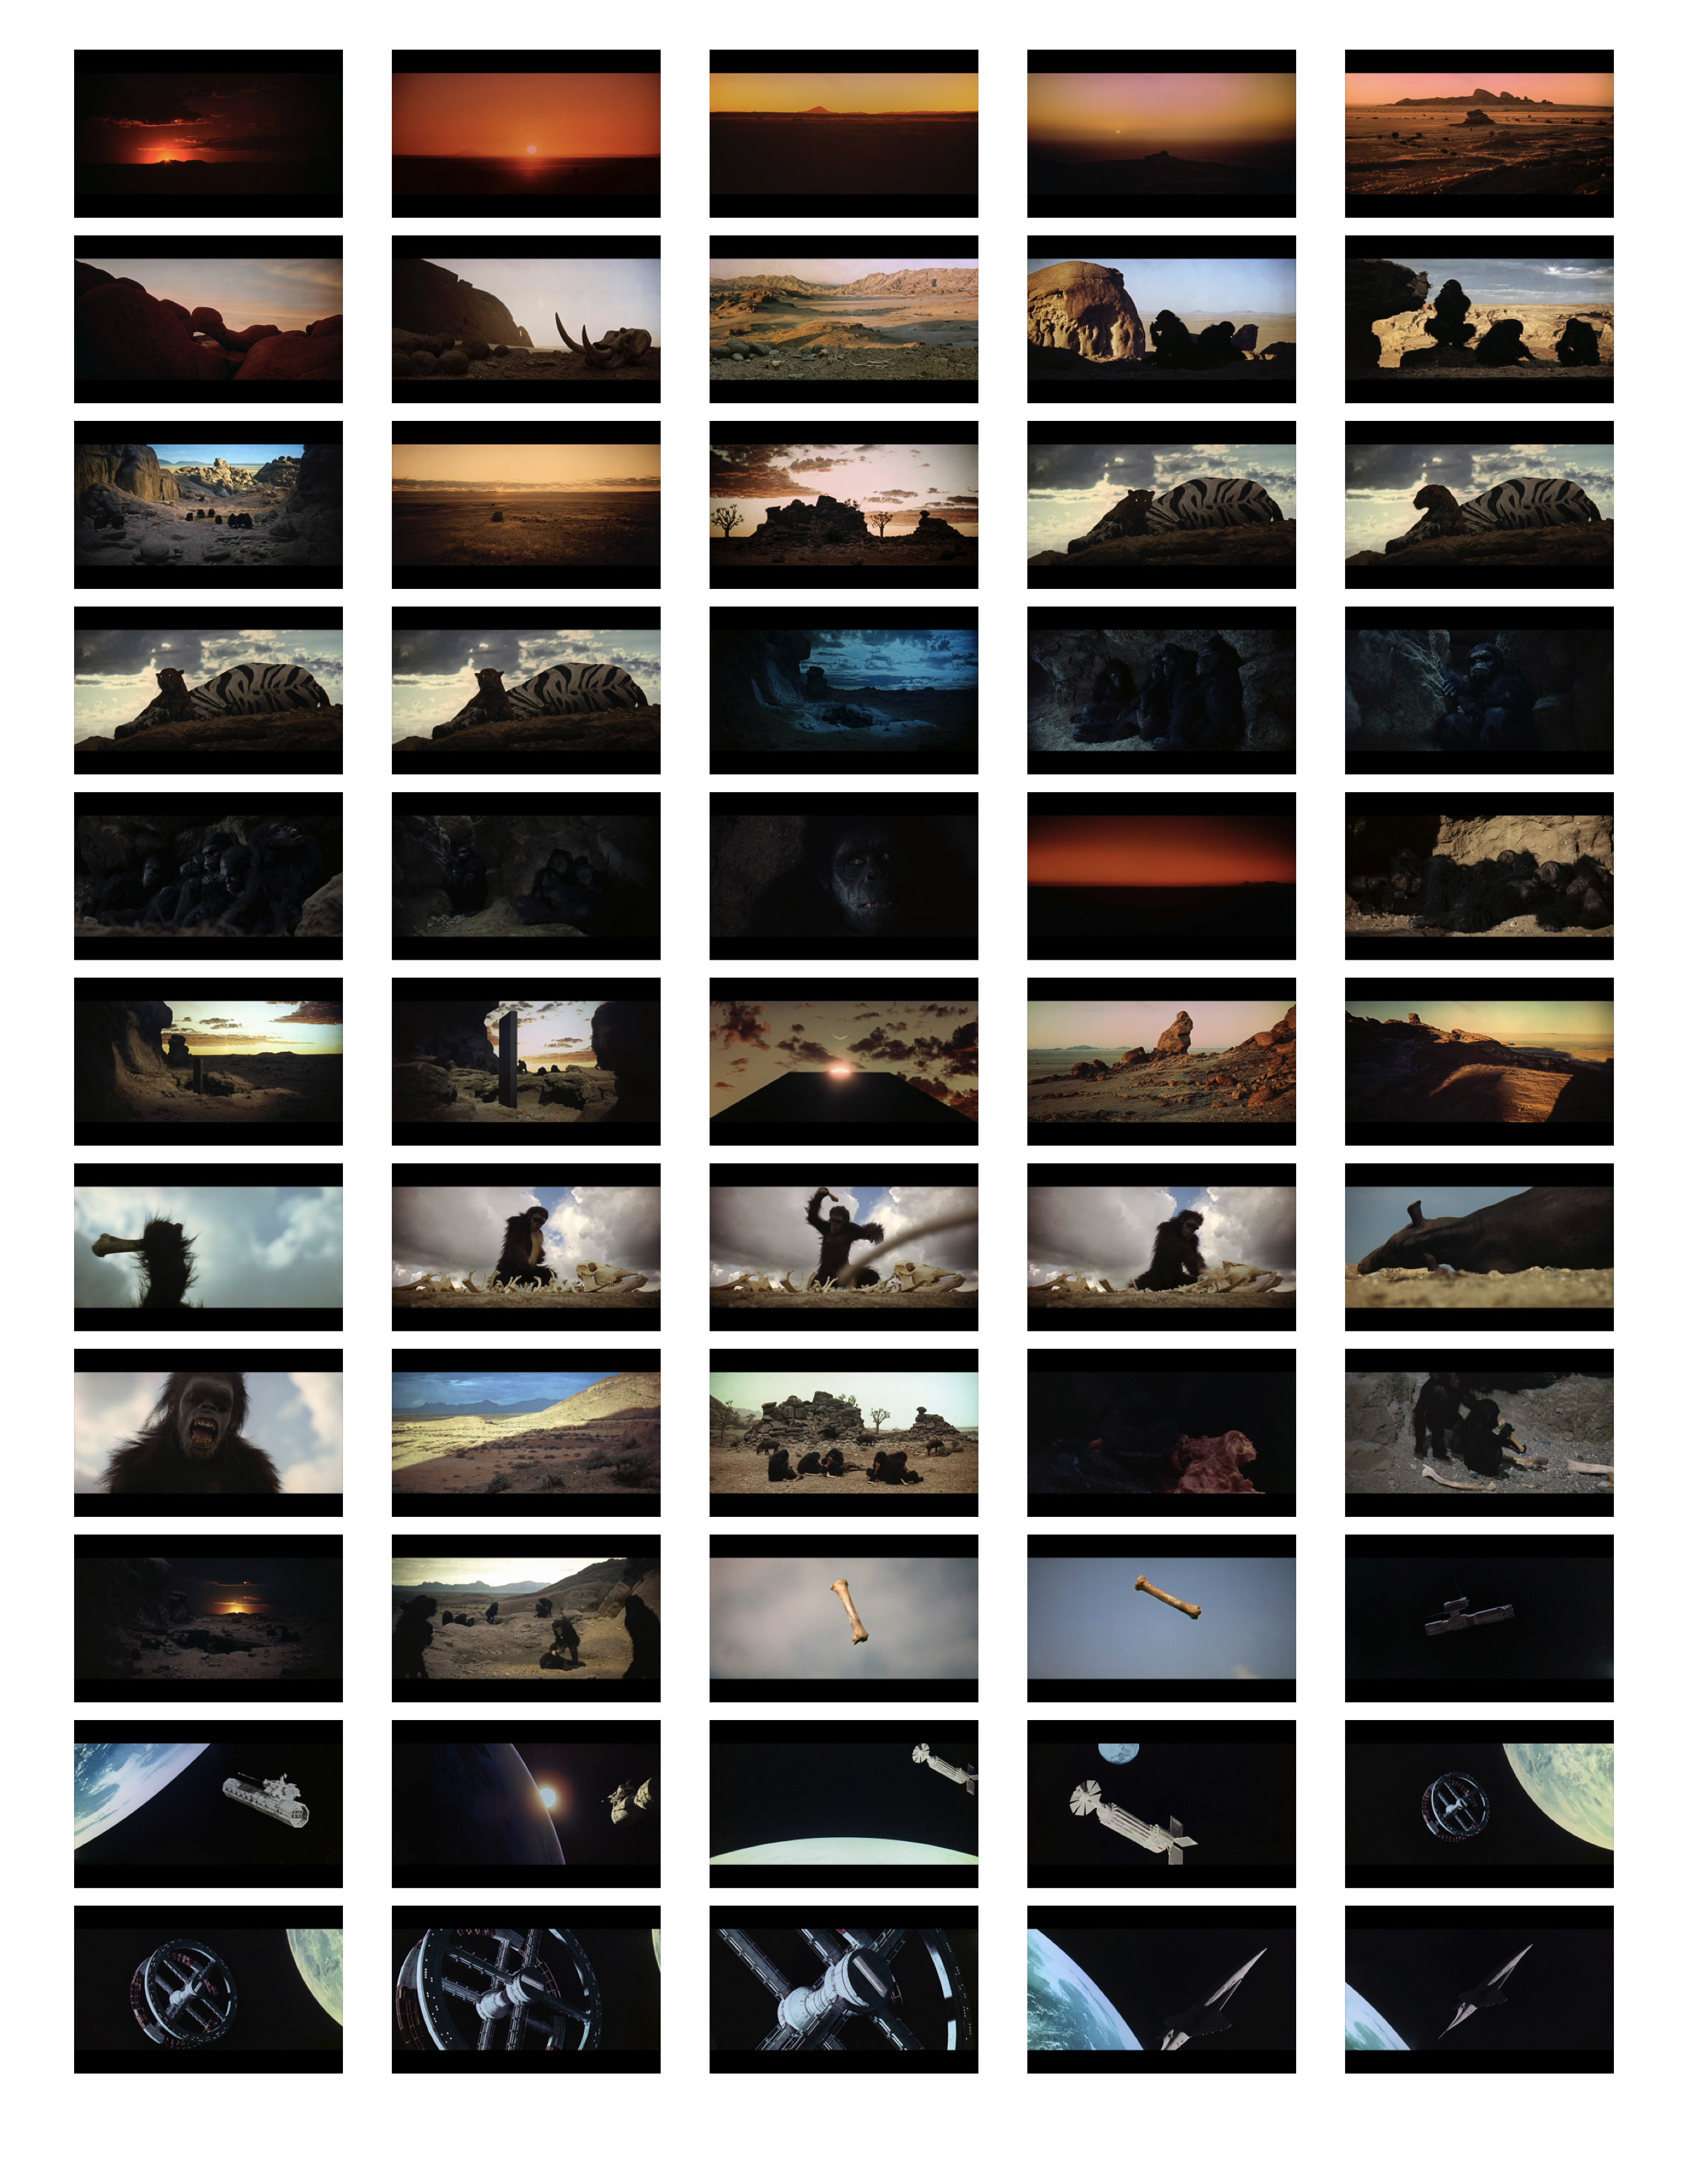 2001 Space Odyssey Cinematography - contact sheets-01